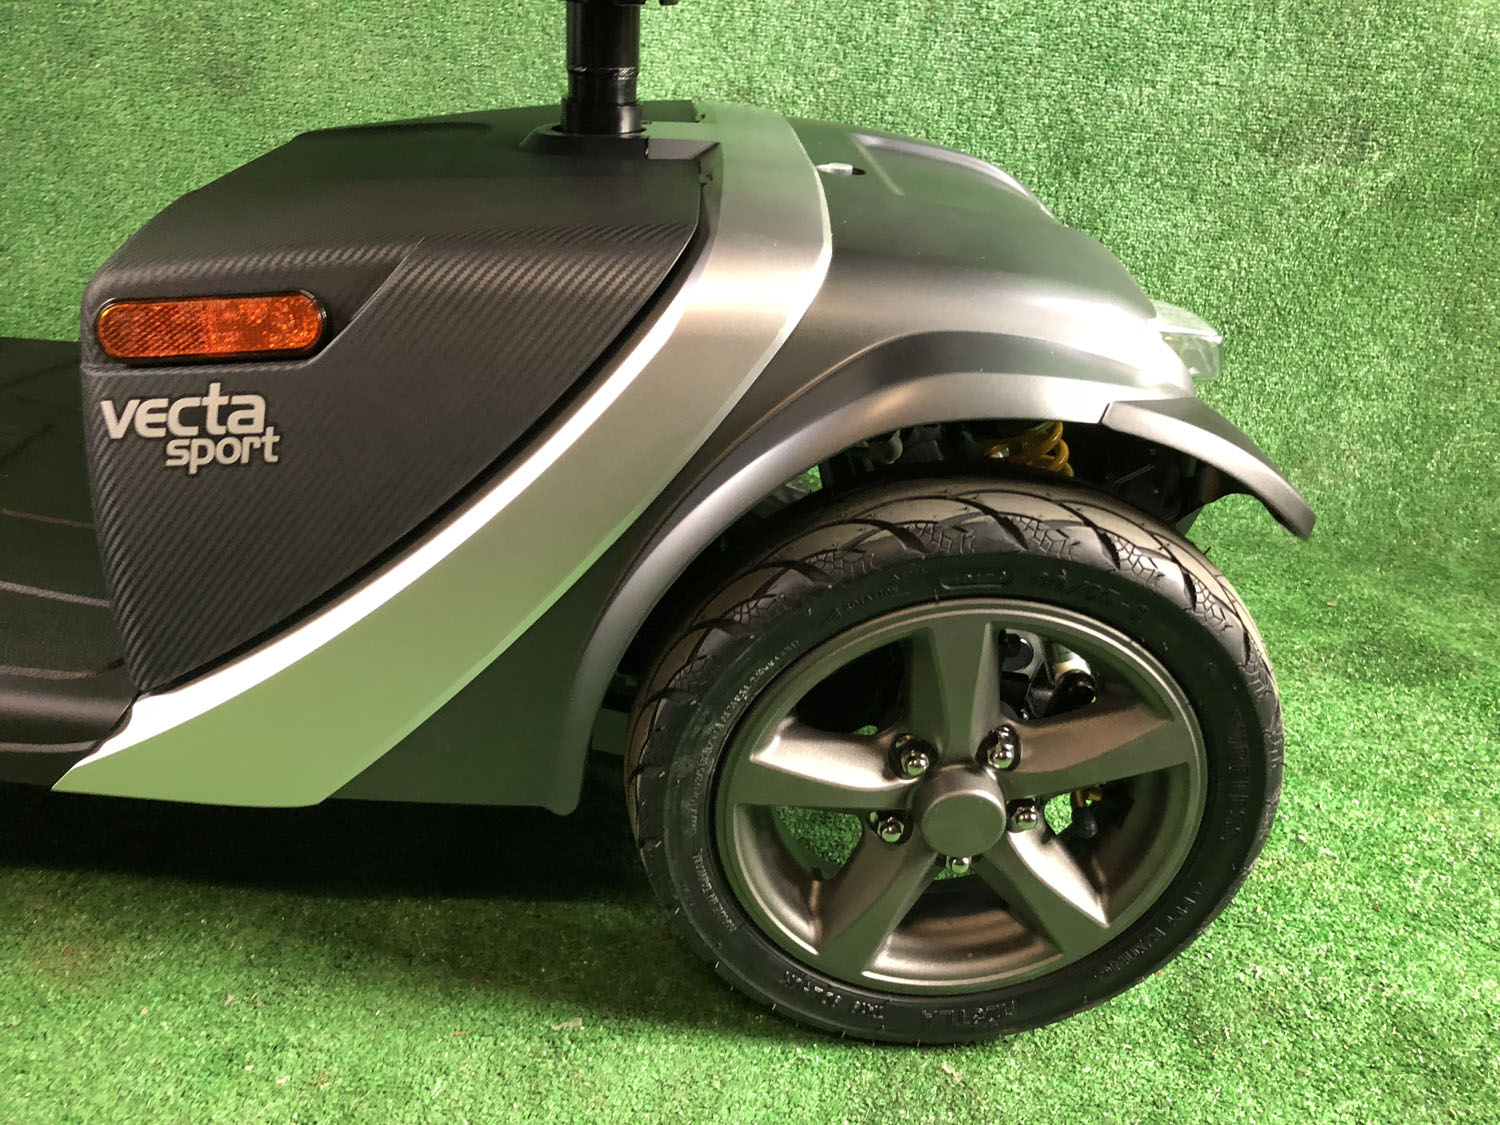 New Rascal Vecta Sport from Electric Mobility 8mph Mid Size Mobility Scooter